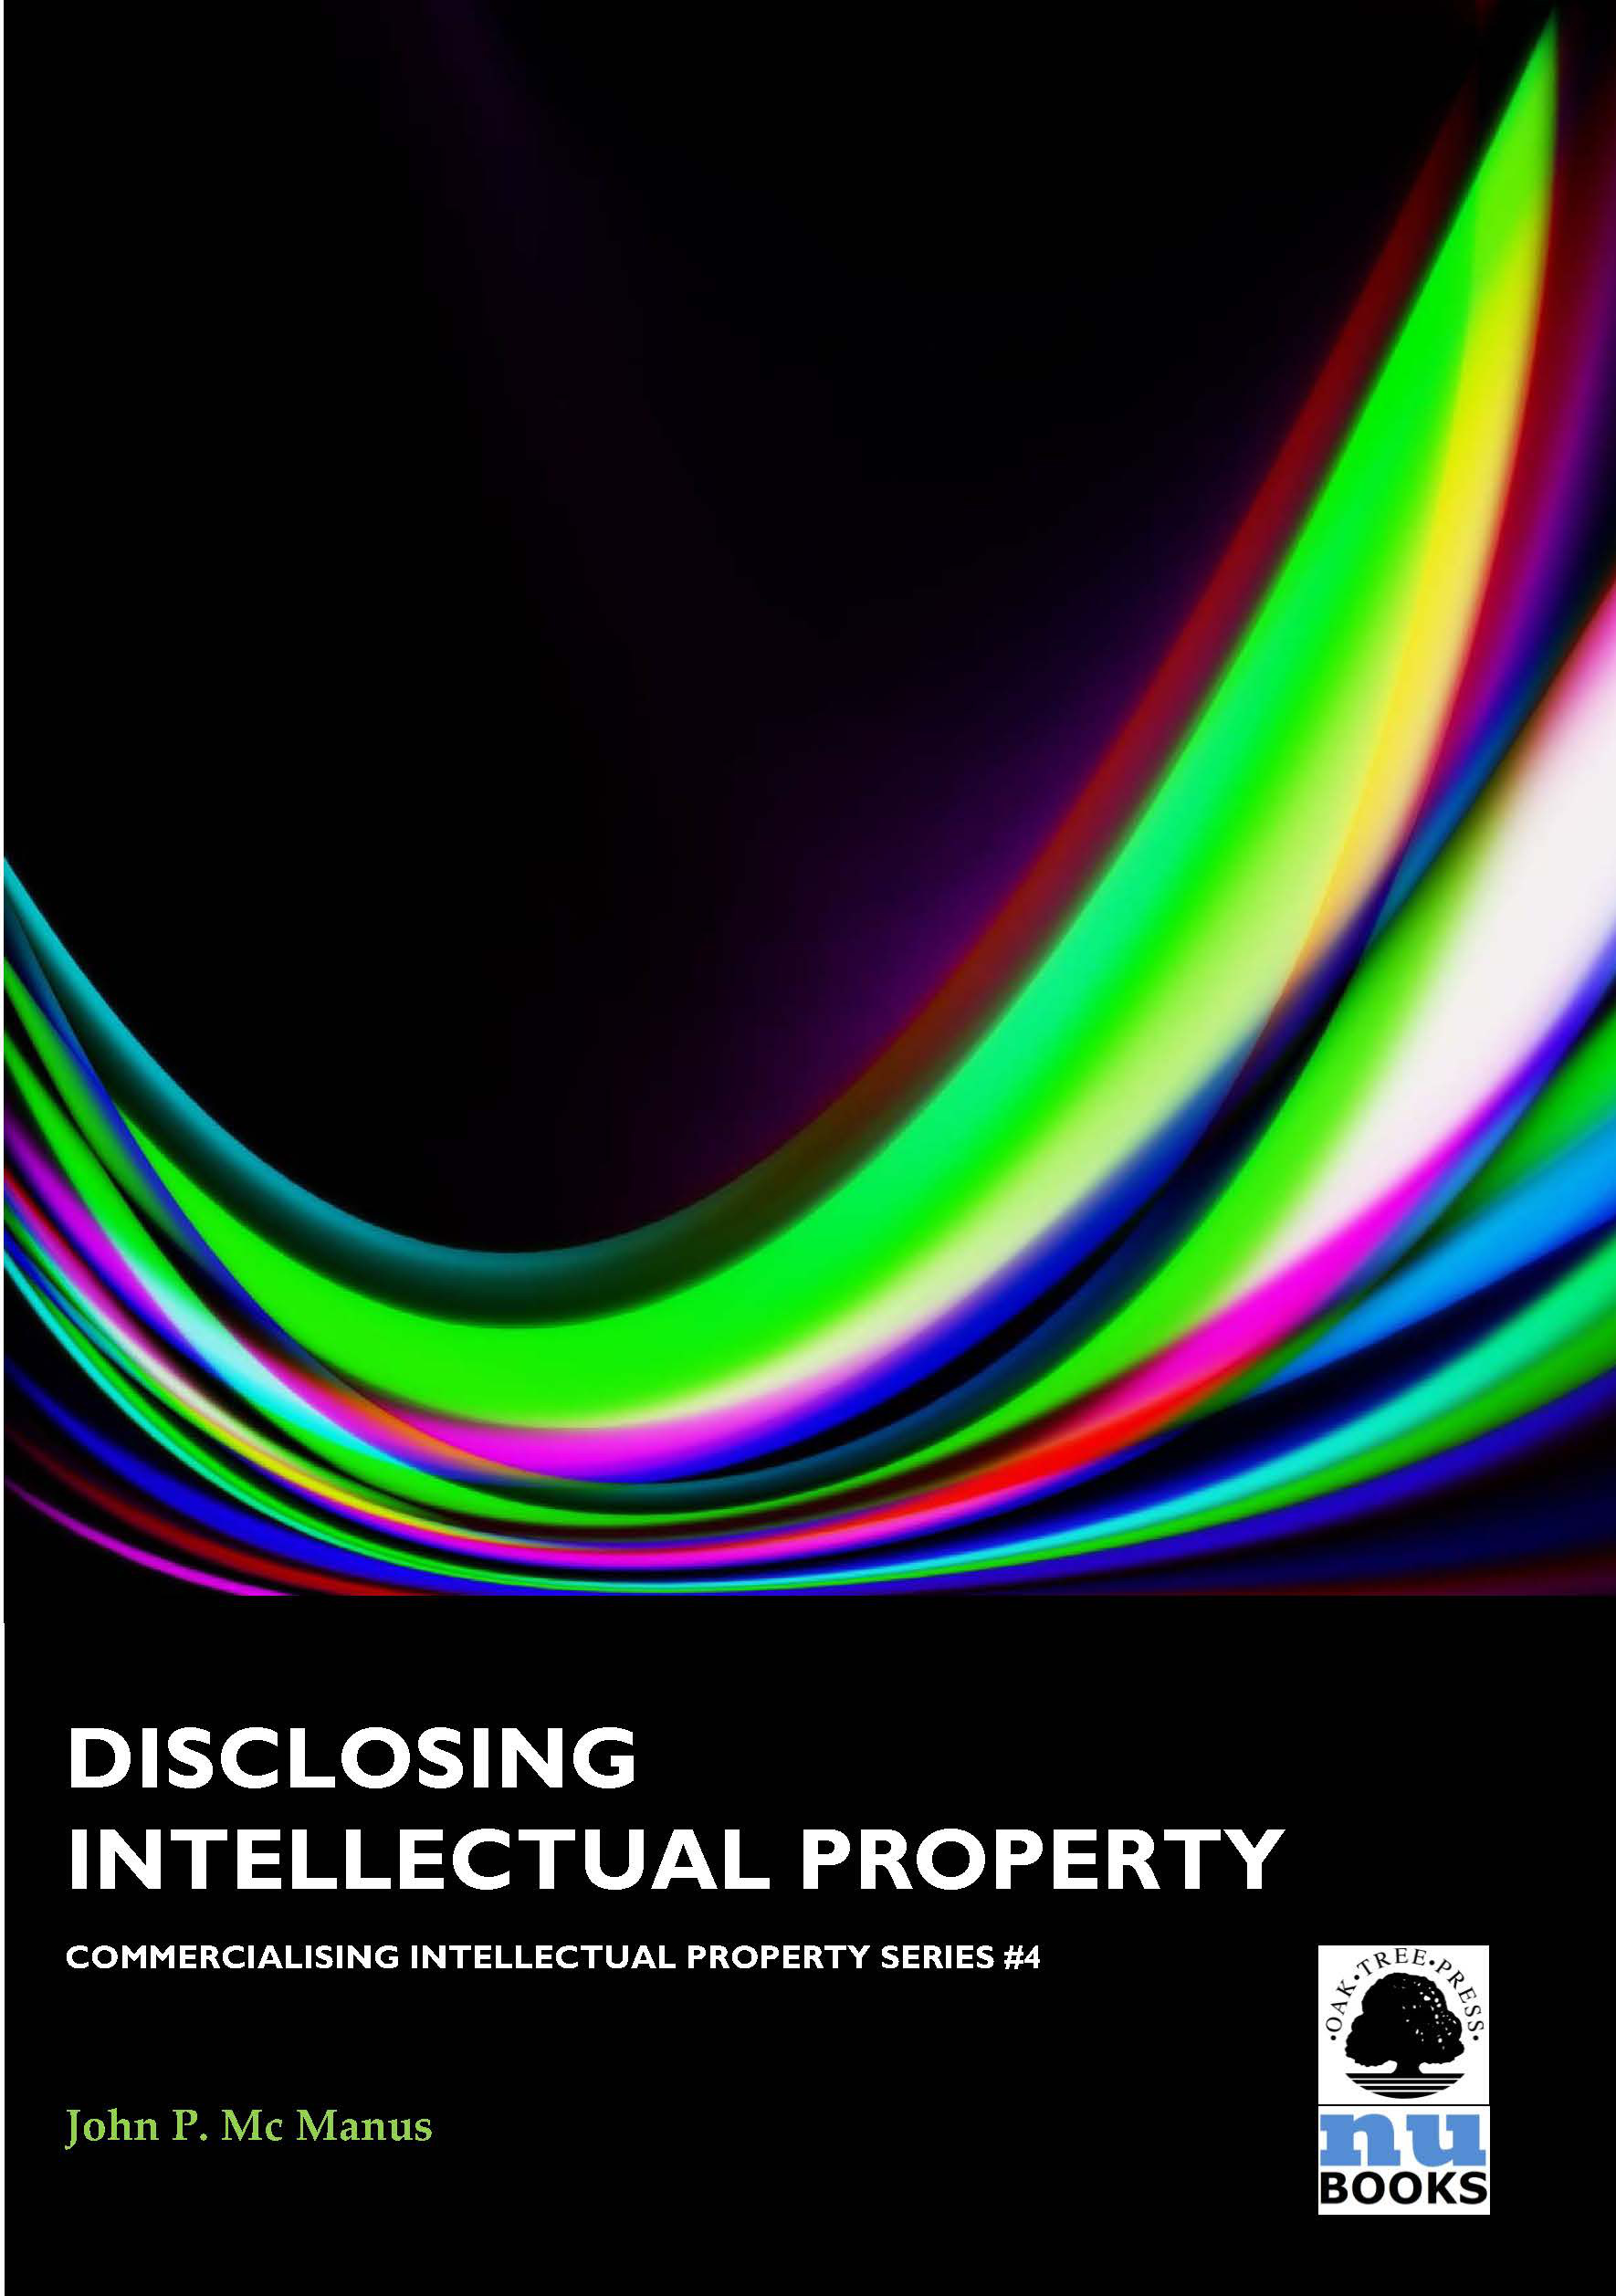 Disclosing Intellectual Property